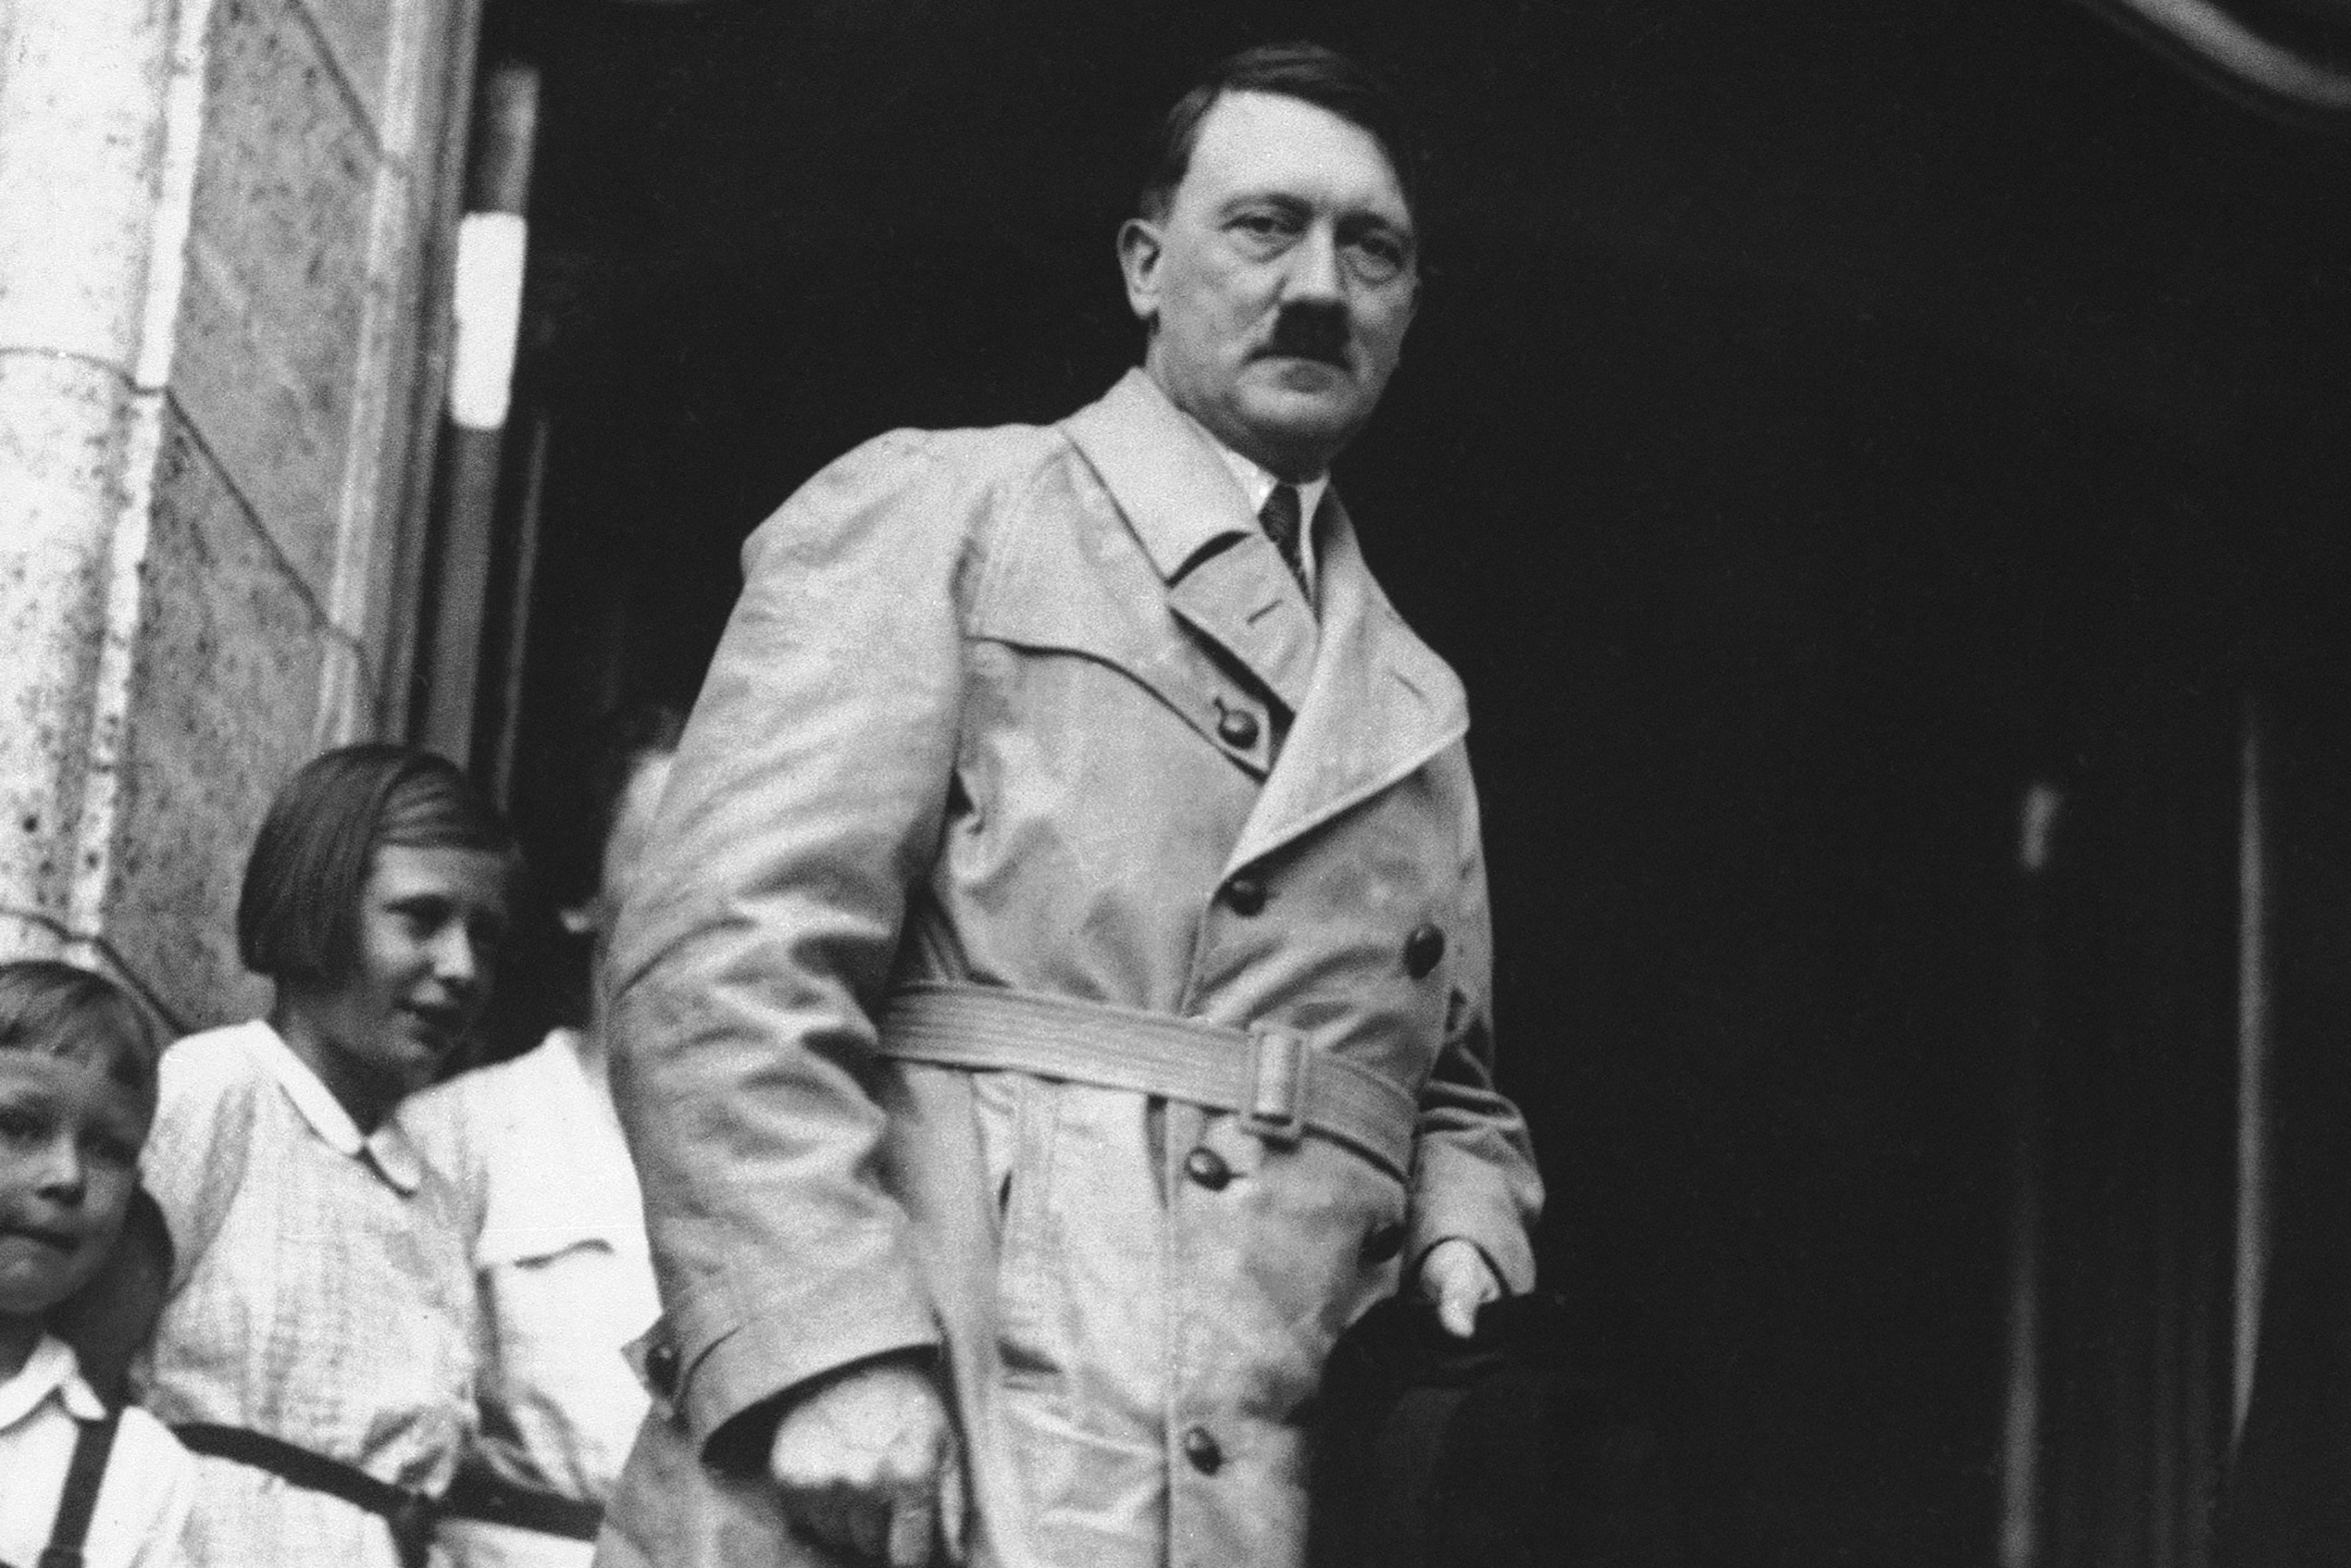 Kid's book slammed for featuring Hitler among 'great leaders'